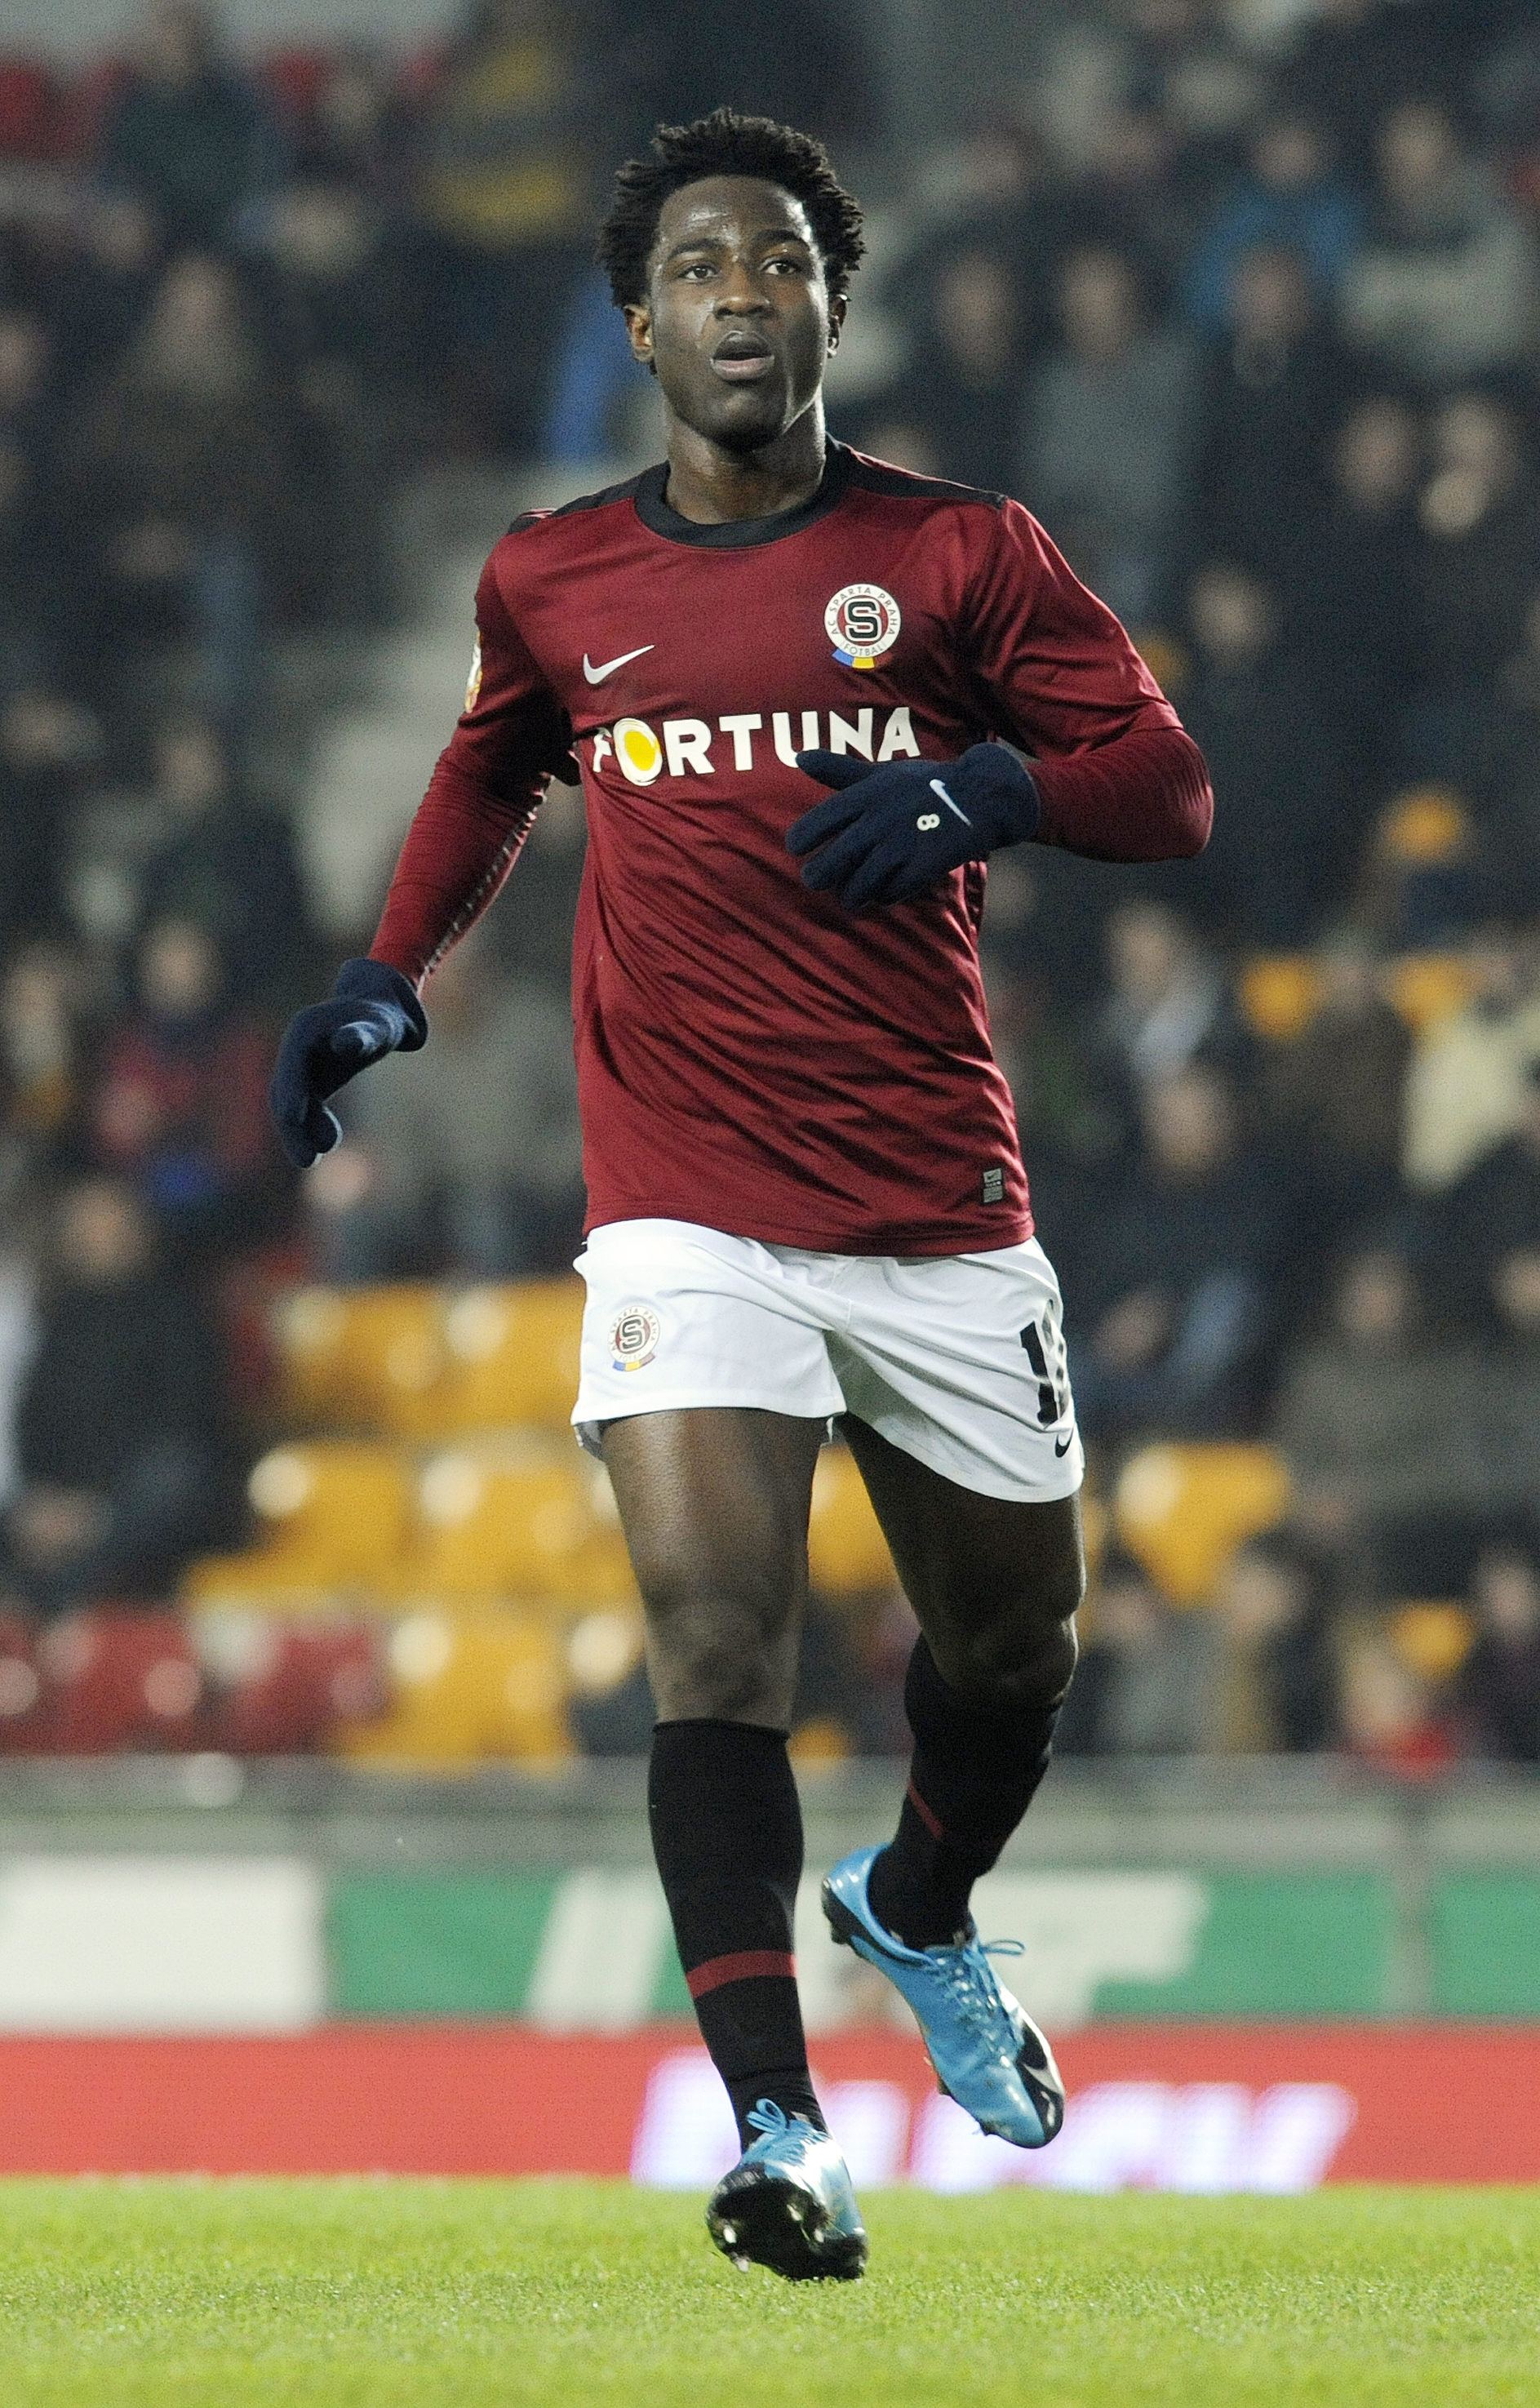 PRAGUE, CZECH REPUBLIC - OCTOBER 31: Bony Wilfried of AC Sparta Praha during the Gambrinus Liga match between AC Sparta Praha and FC Banik Ostrava held on October 31, 2009 at the GENERALI Arena in Prague, Czech Republic. (Photo by Michal Cizek/EuroFootball/Getty Images)